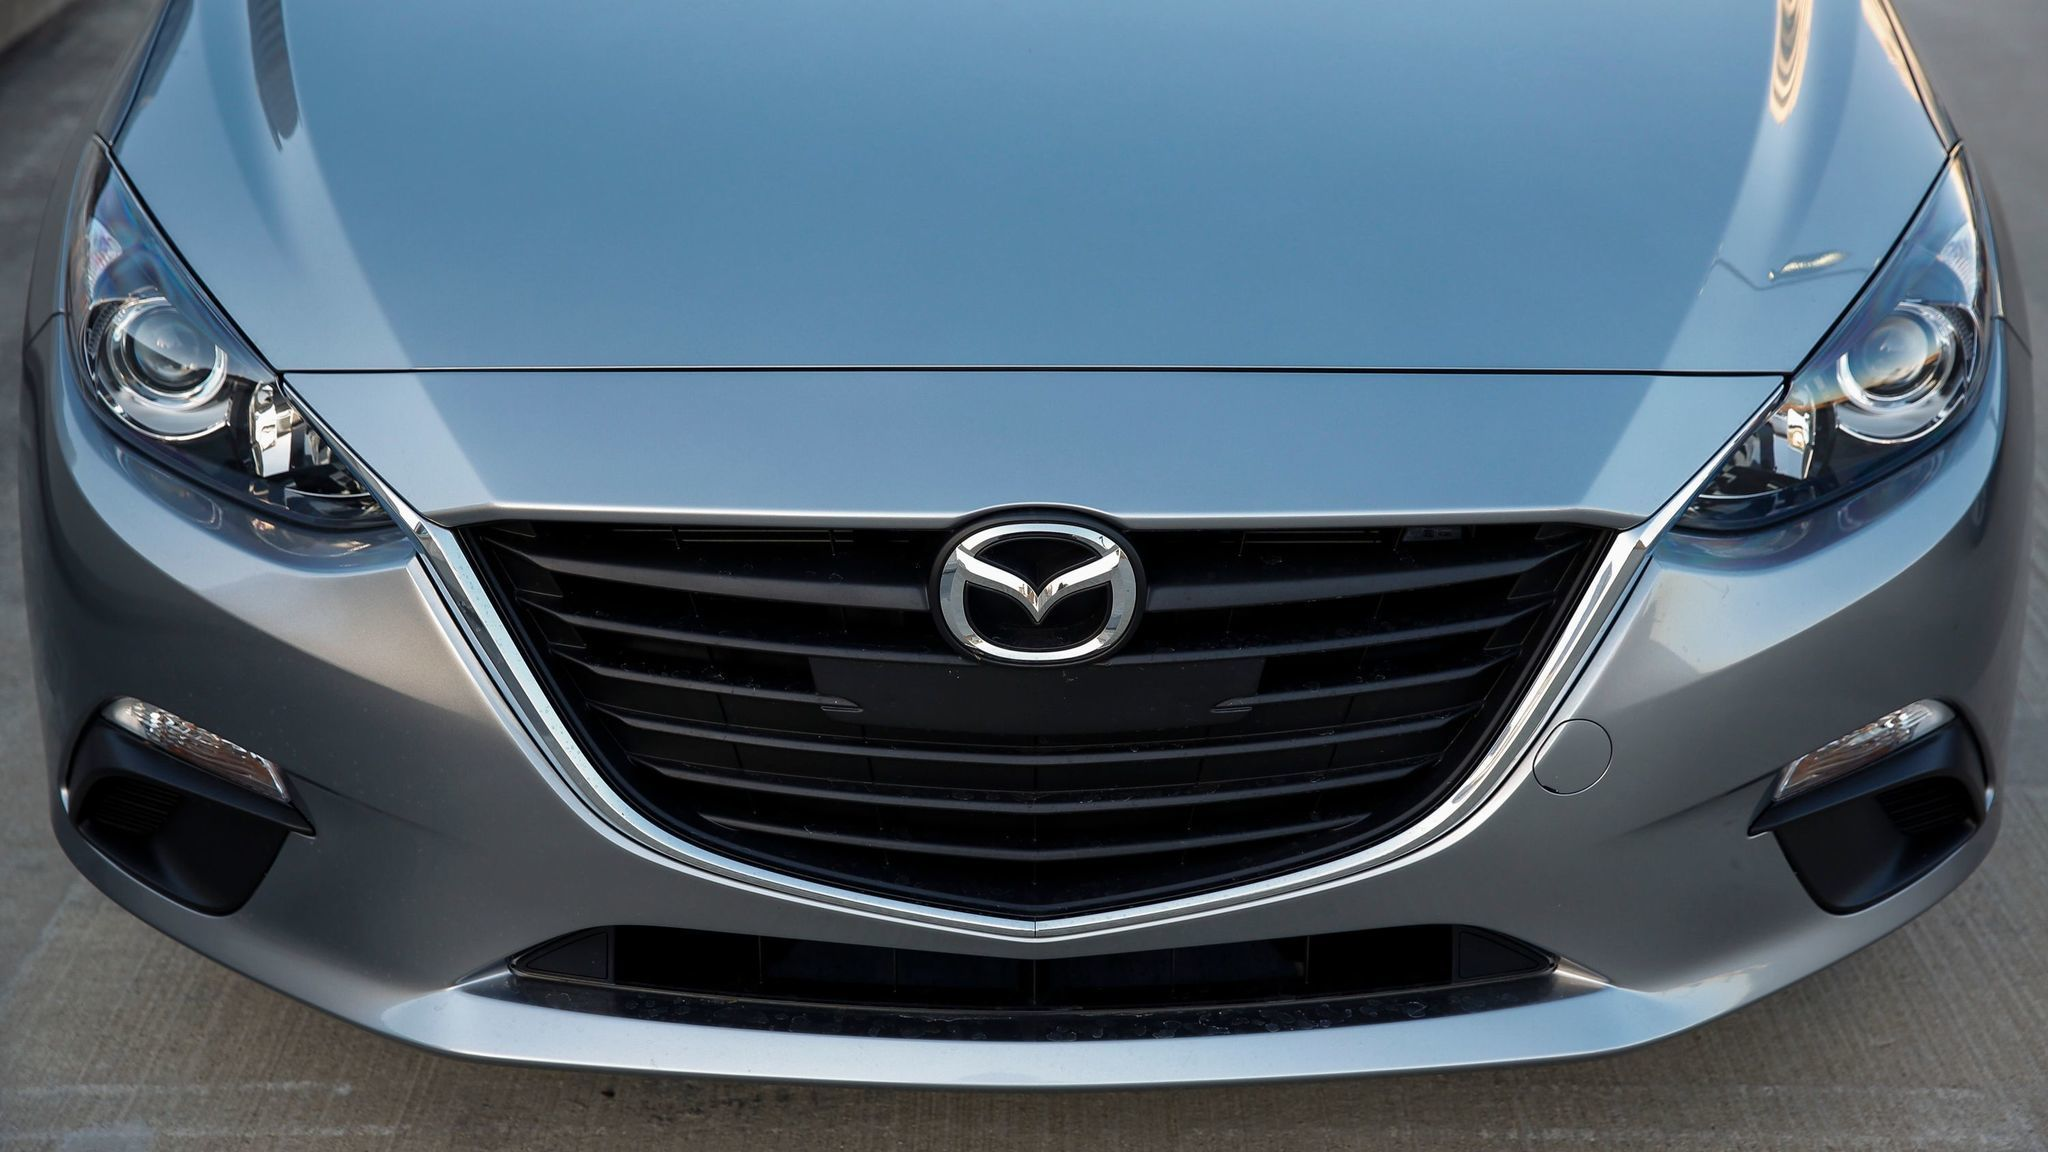 mazda recalls more than 225 000 cars after saying parking brake may not hold la times. Black Bedroom Furniture Sets. Home Design Ideas